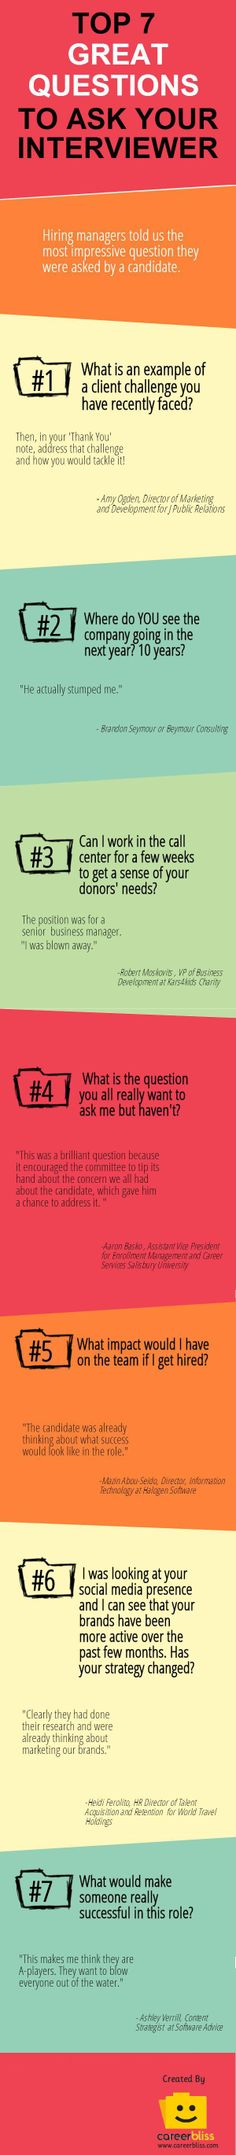 Top 7 great questions to ask your interviewer #infografia #infographic #empleo